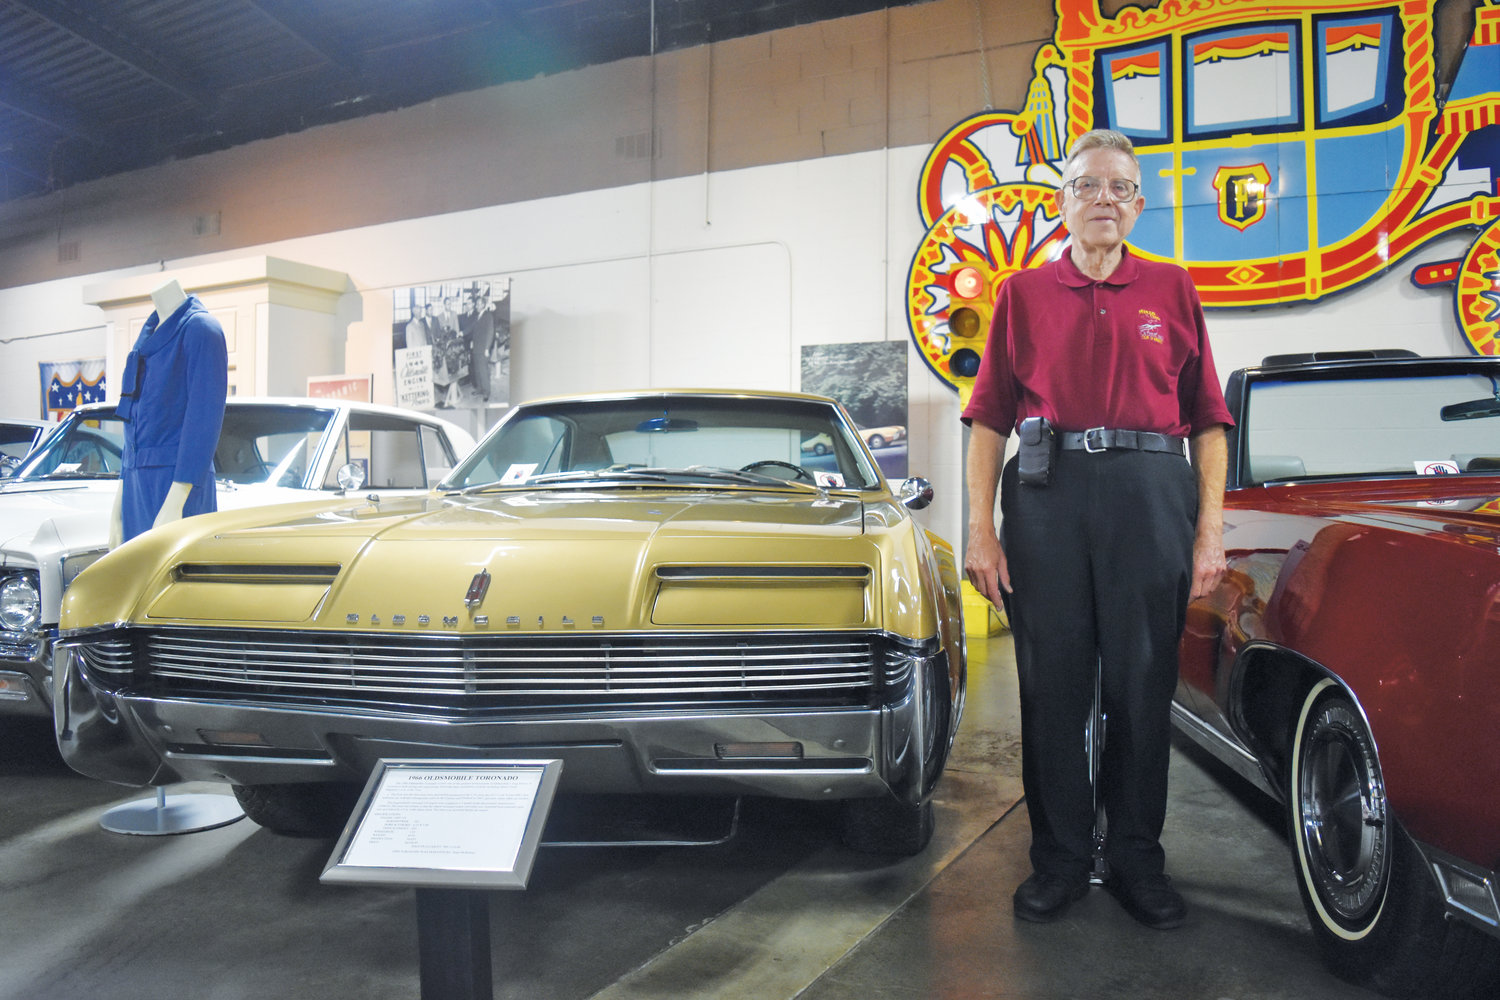 R.E. Olds Transportation Museum volunteer Jerry Garfield stands next to a 1966 Oldsmobile Toronado.